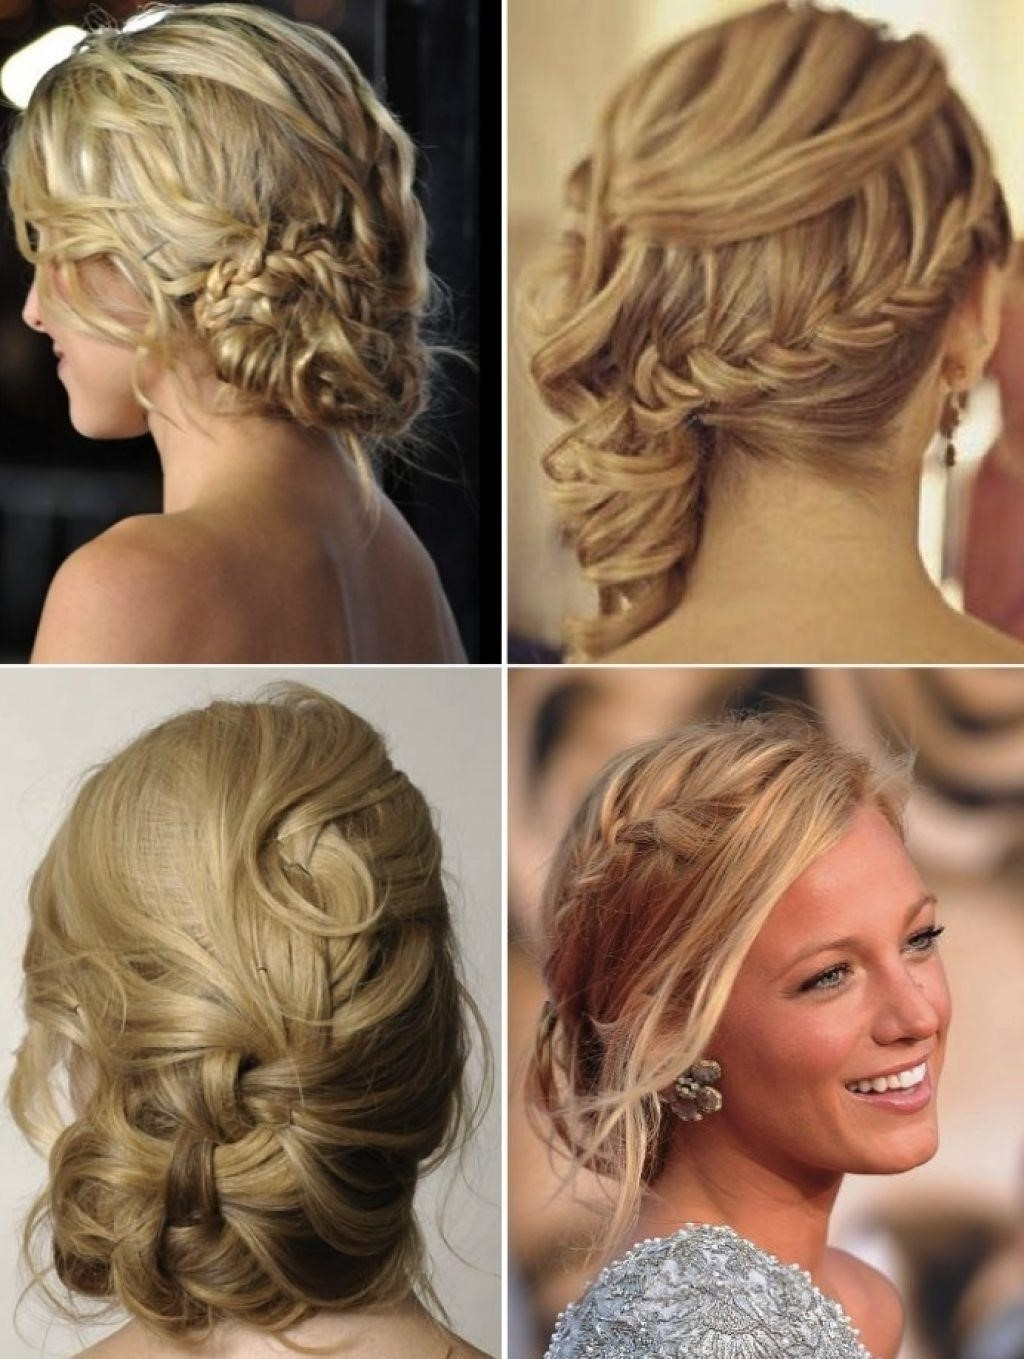 Wedding Hairstyles Curly Side Bun Curls Bridal Hair Ponytail With In Most Recently Released Curly Side Bun Wedding Hairstyles (View 10 of 15)